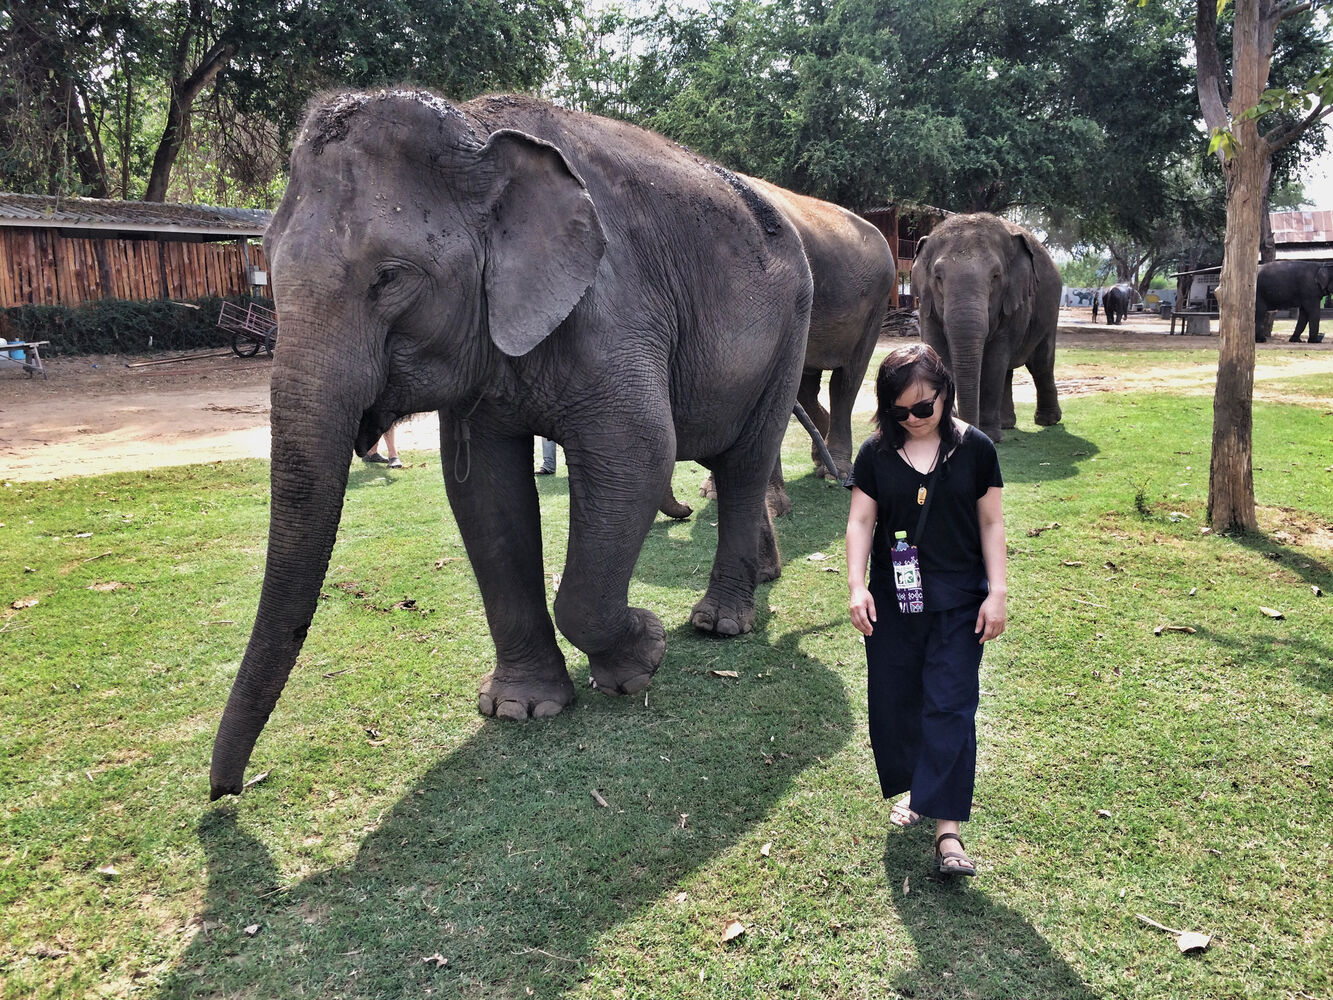 Some of the 14 elephants currently at the Elephants World sanctuary walk with a visitor. The facility lets people interact with the animals in an ethical, cruelty-free way and helps educate about Thailand's national animal, as well. (Colin Corneau/Brandon Sun)